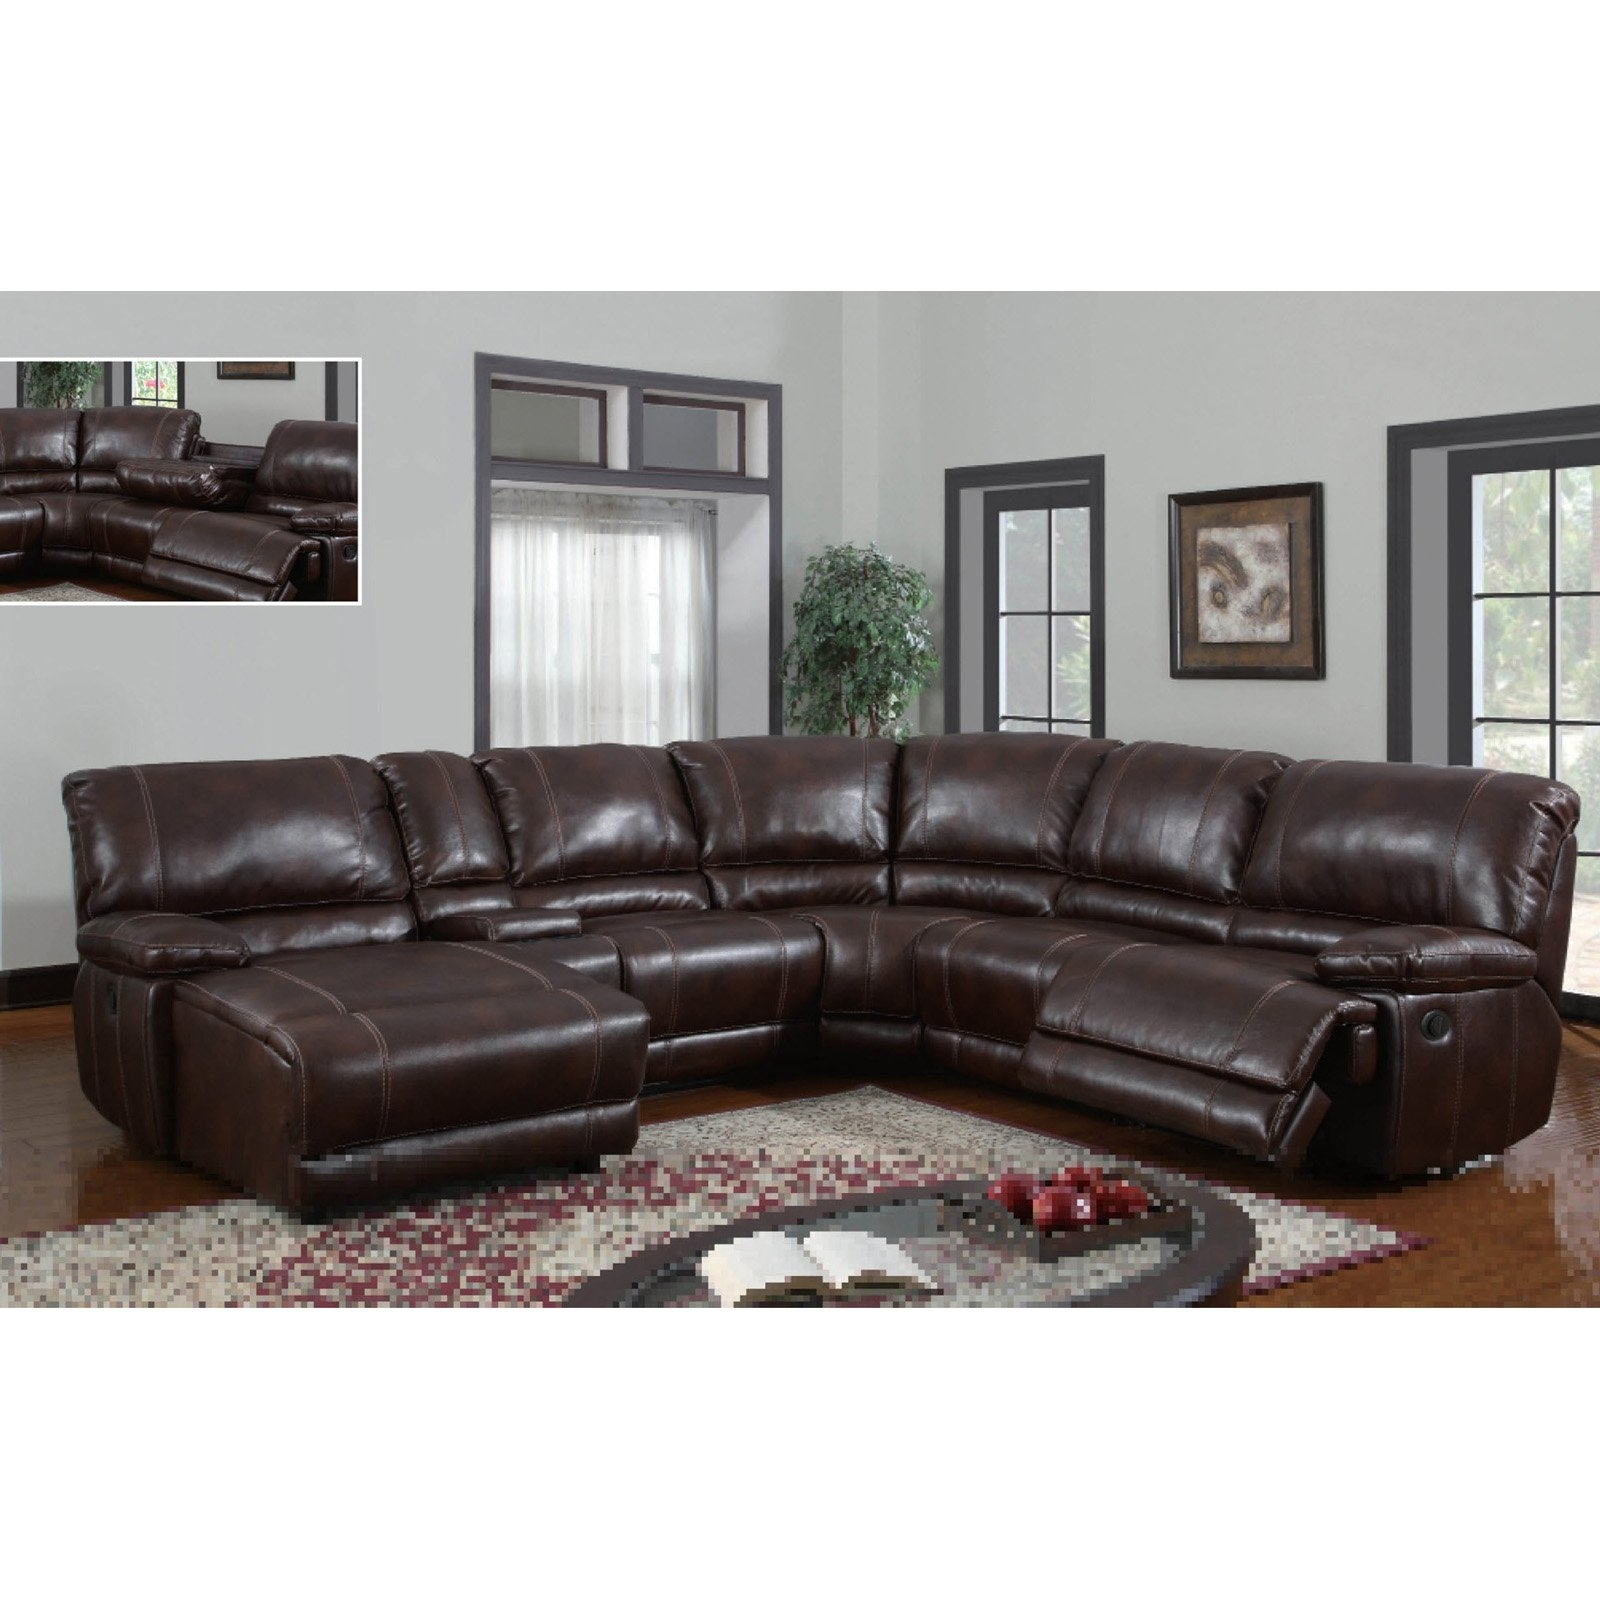 Sectional Sofas With Power Recliners With Regard To 2018 Leather Sectional Sofa With Power Recliner 11 With Leather (View 15 of 20)